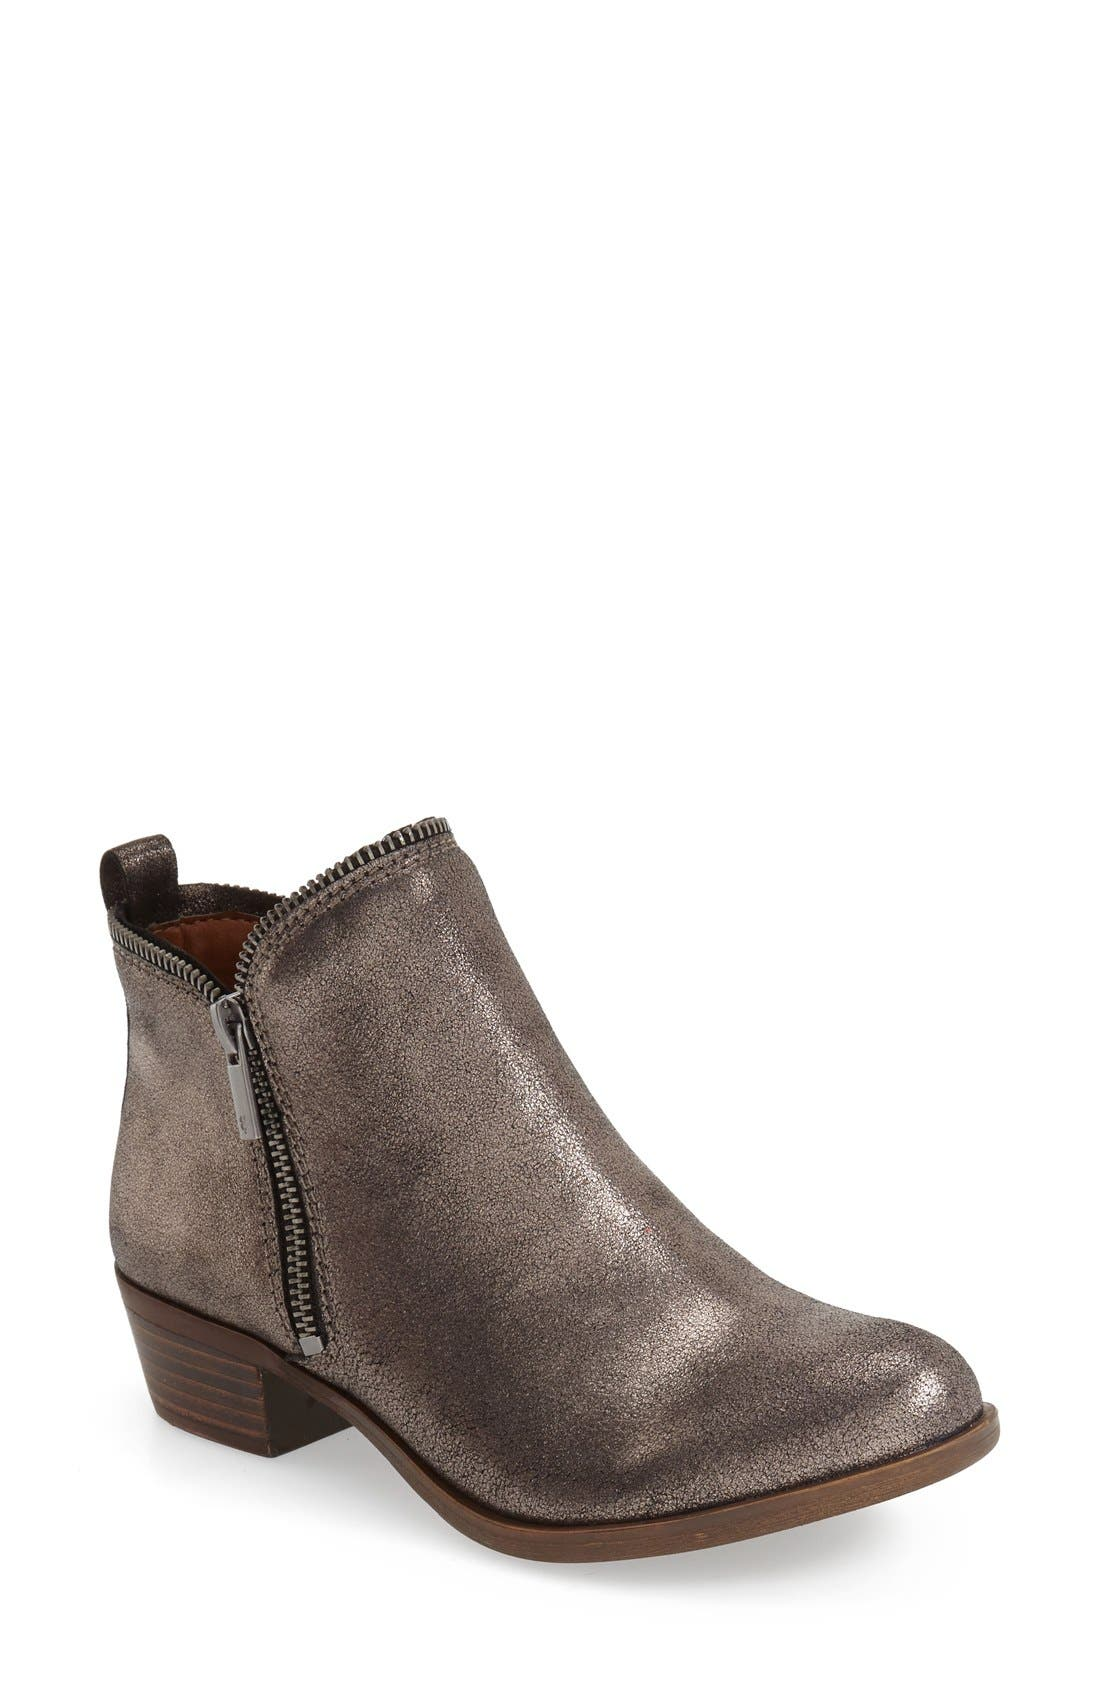 Alternate Image 1 Selected - Lucky Brand 'Bartalino' Bootie (Women)